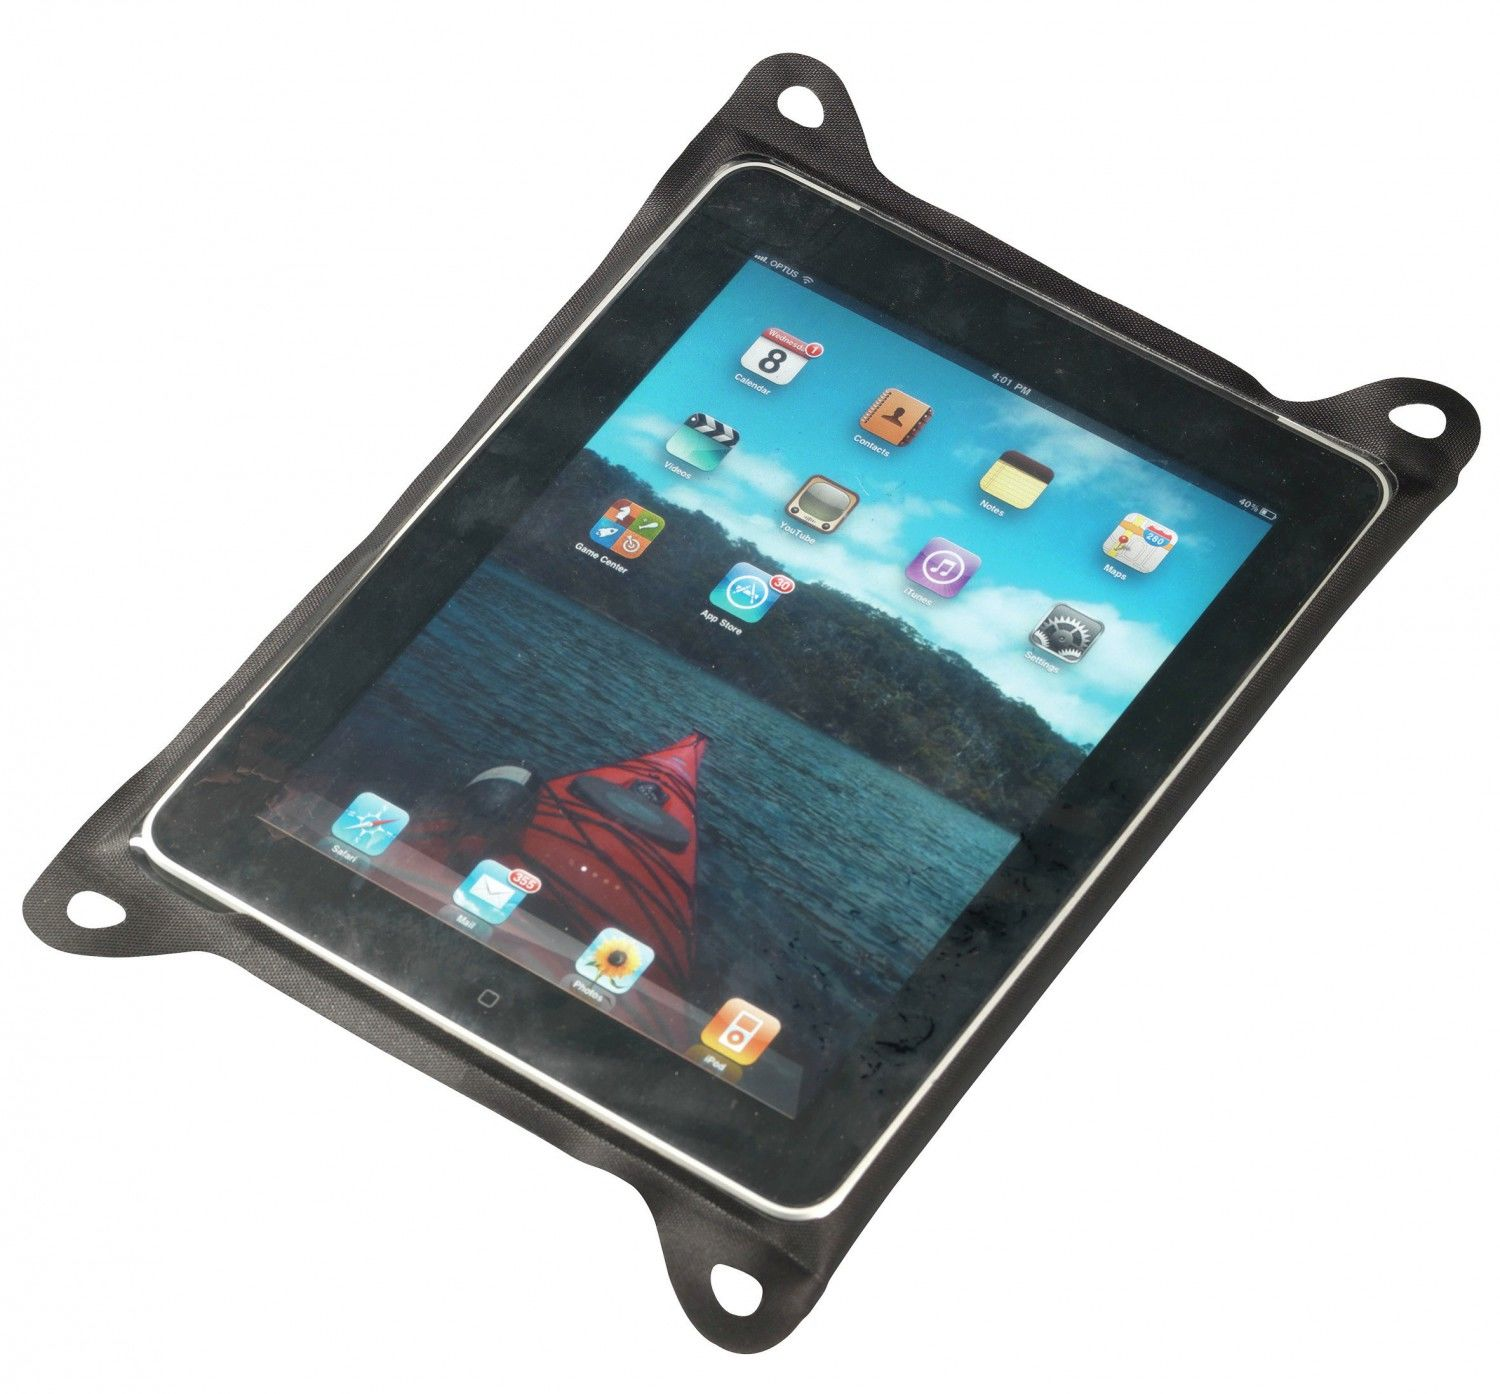 Sea to Summit TPU Case for Small Tablets Schwarz, One Size -Farbe Black, One Siz